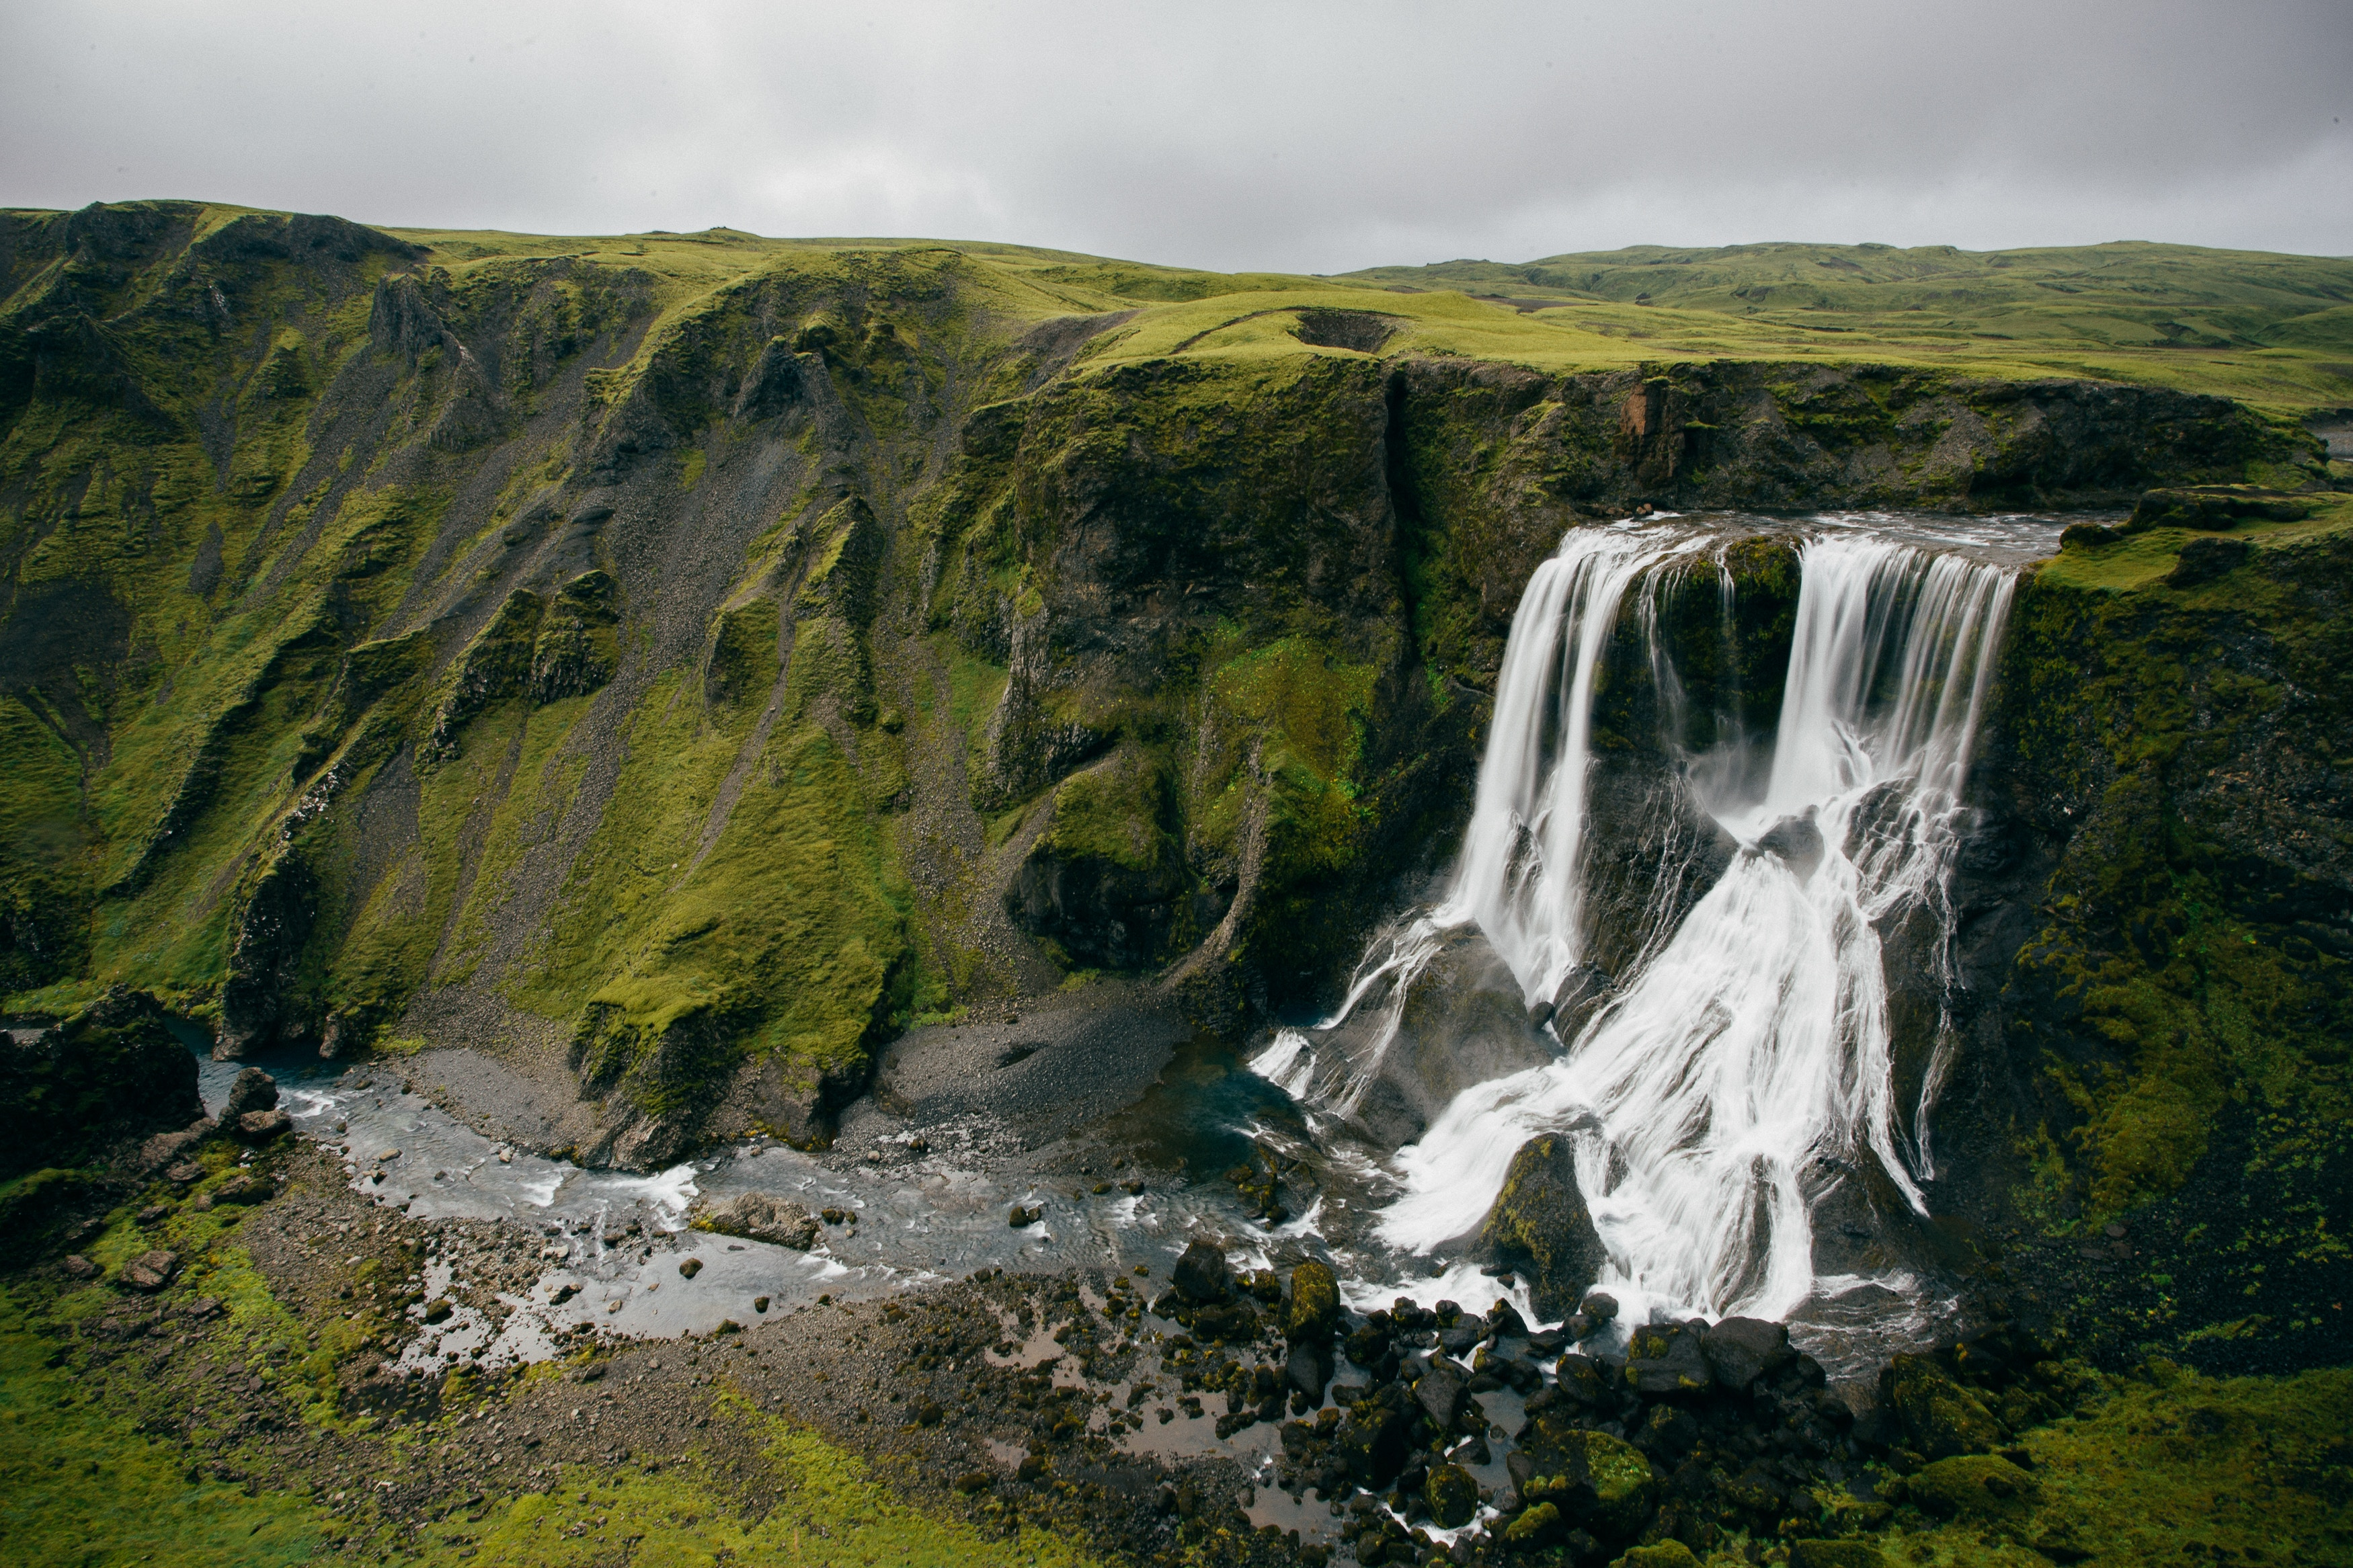 Photo of waterfalls by Jack Smoter.